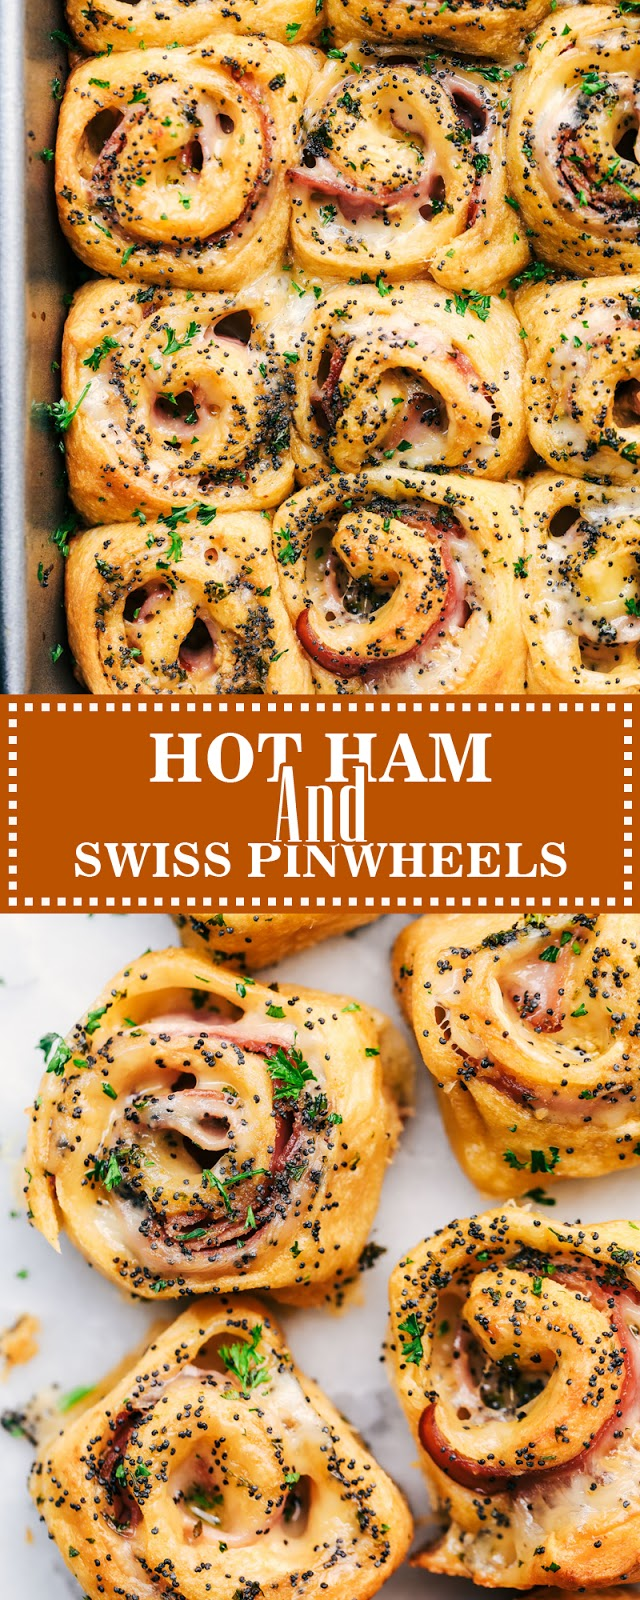 HOT HAM AND SWISS PINWHEELS